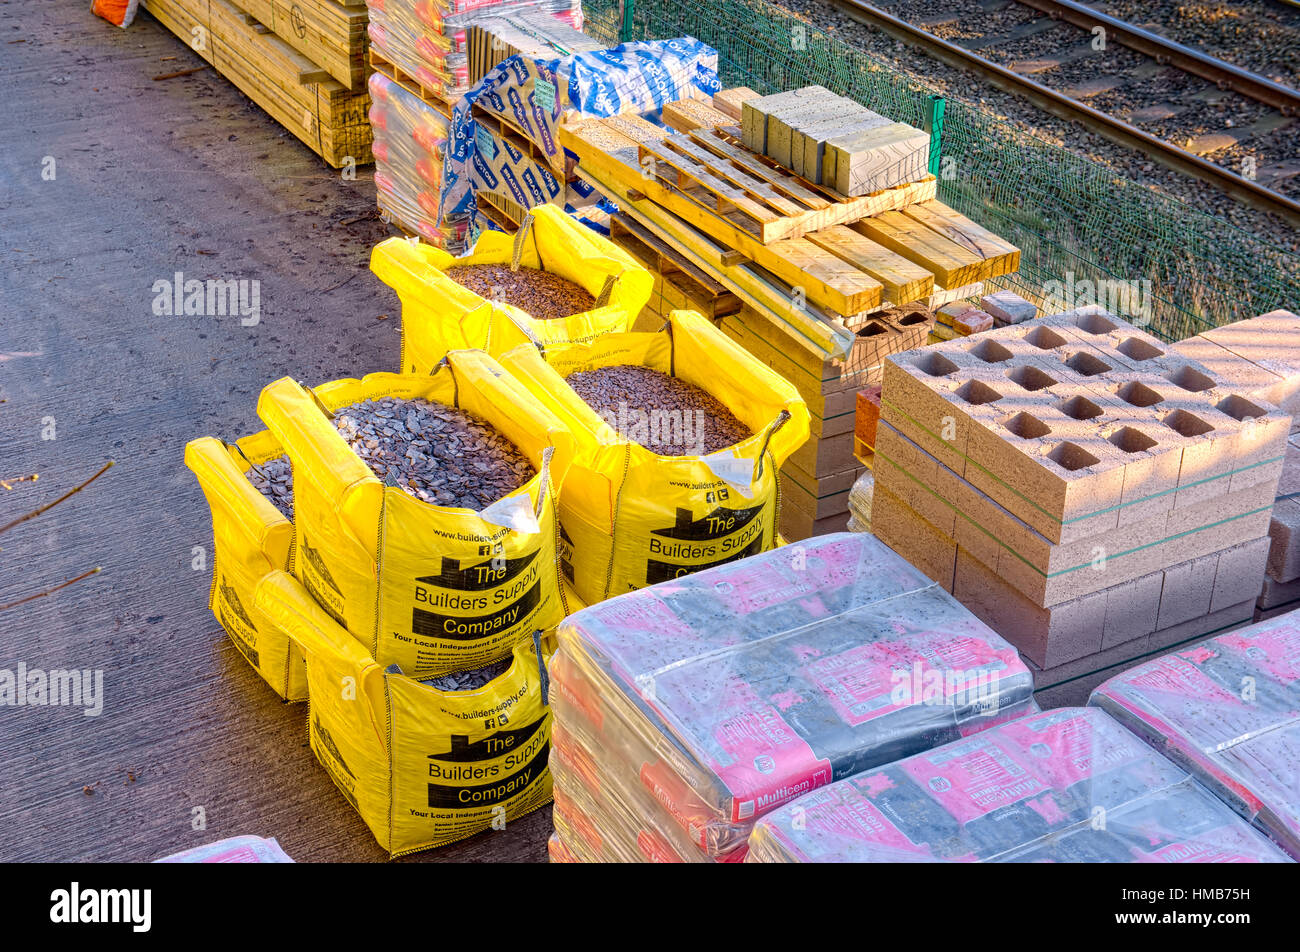 Builders Yard Stock Photos Amp Builders Yard Stock Images